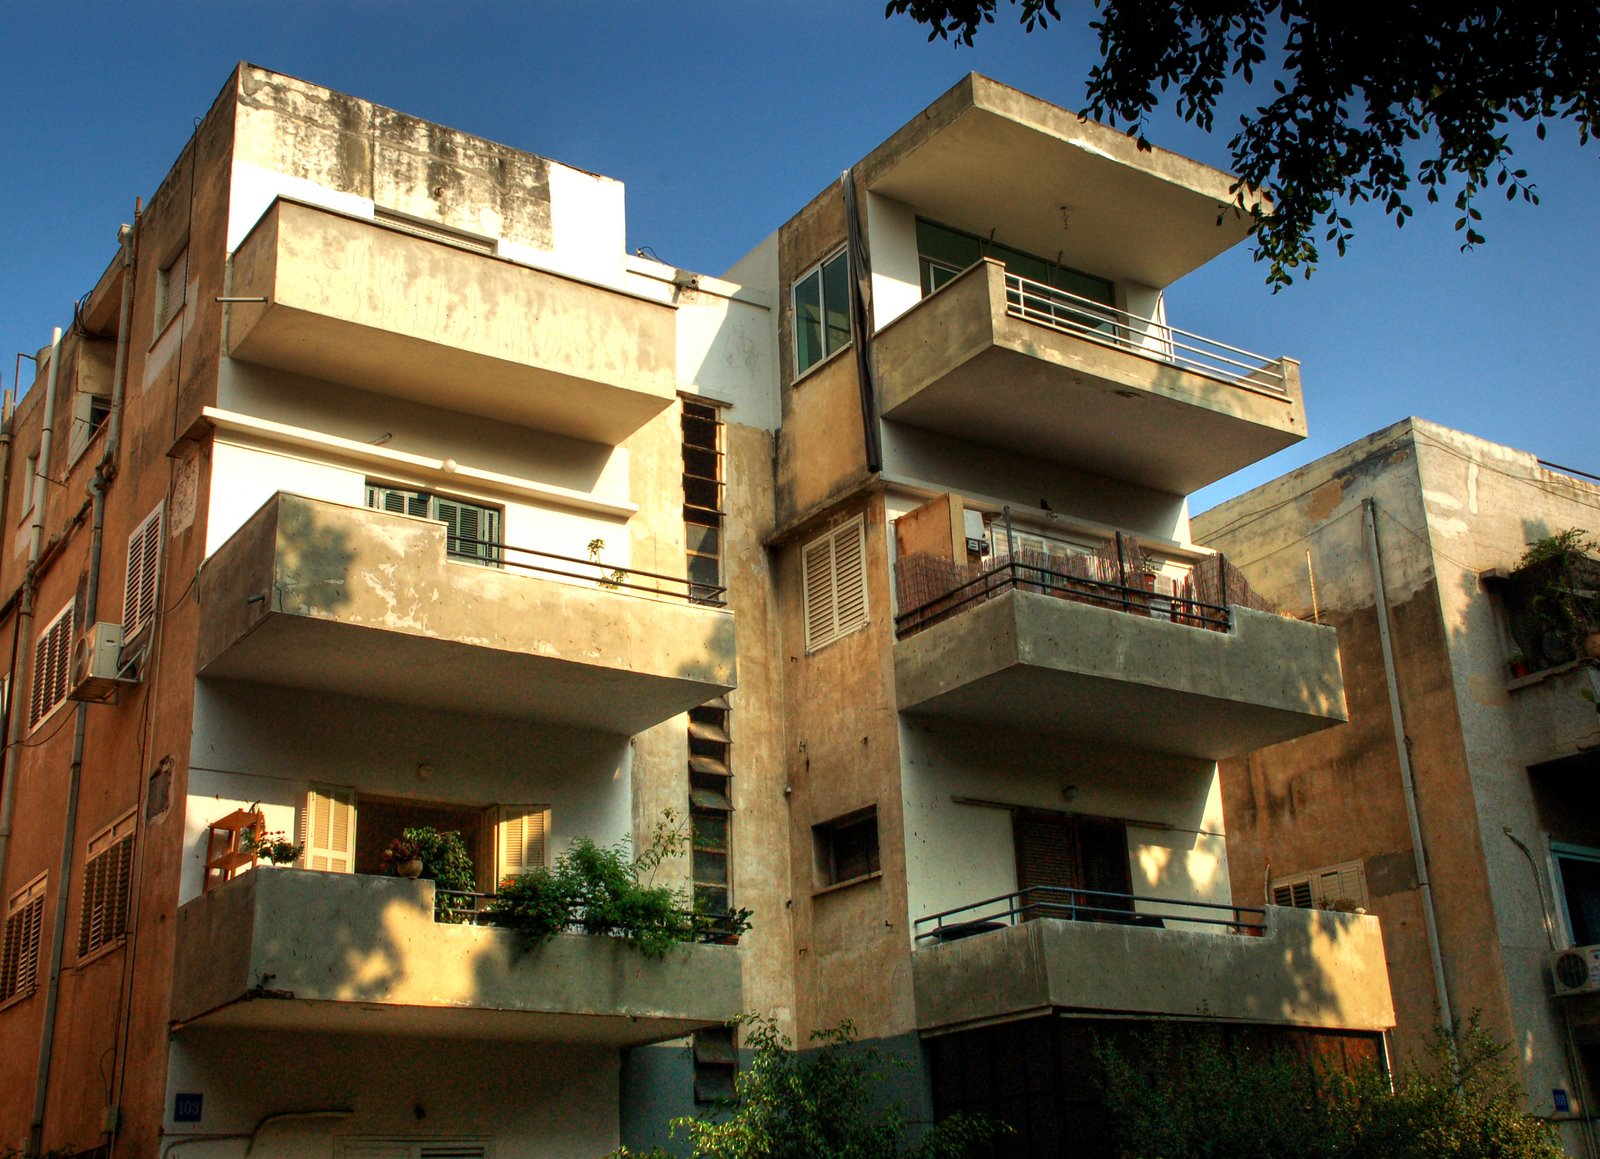 Tel Aviv Bauhaus Architecture - The White City